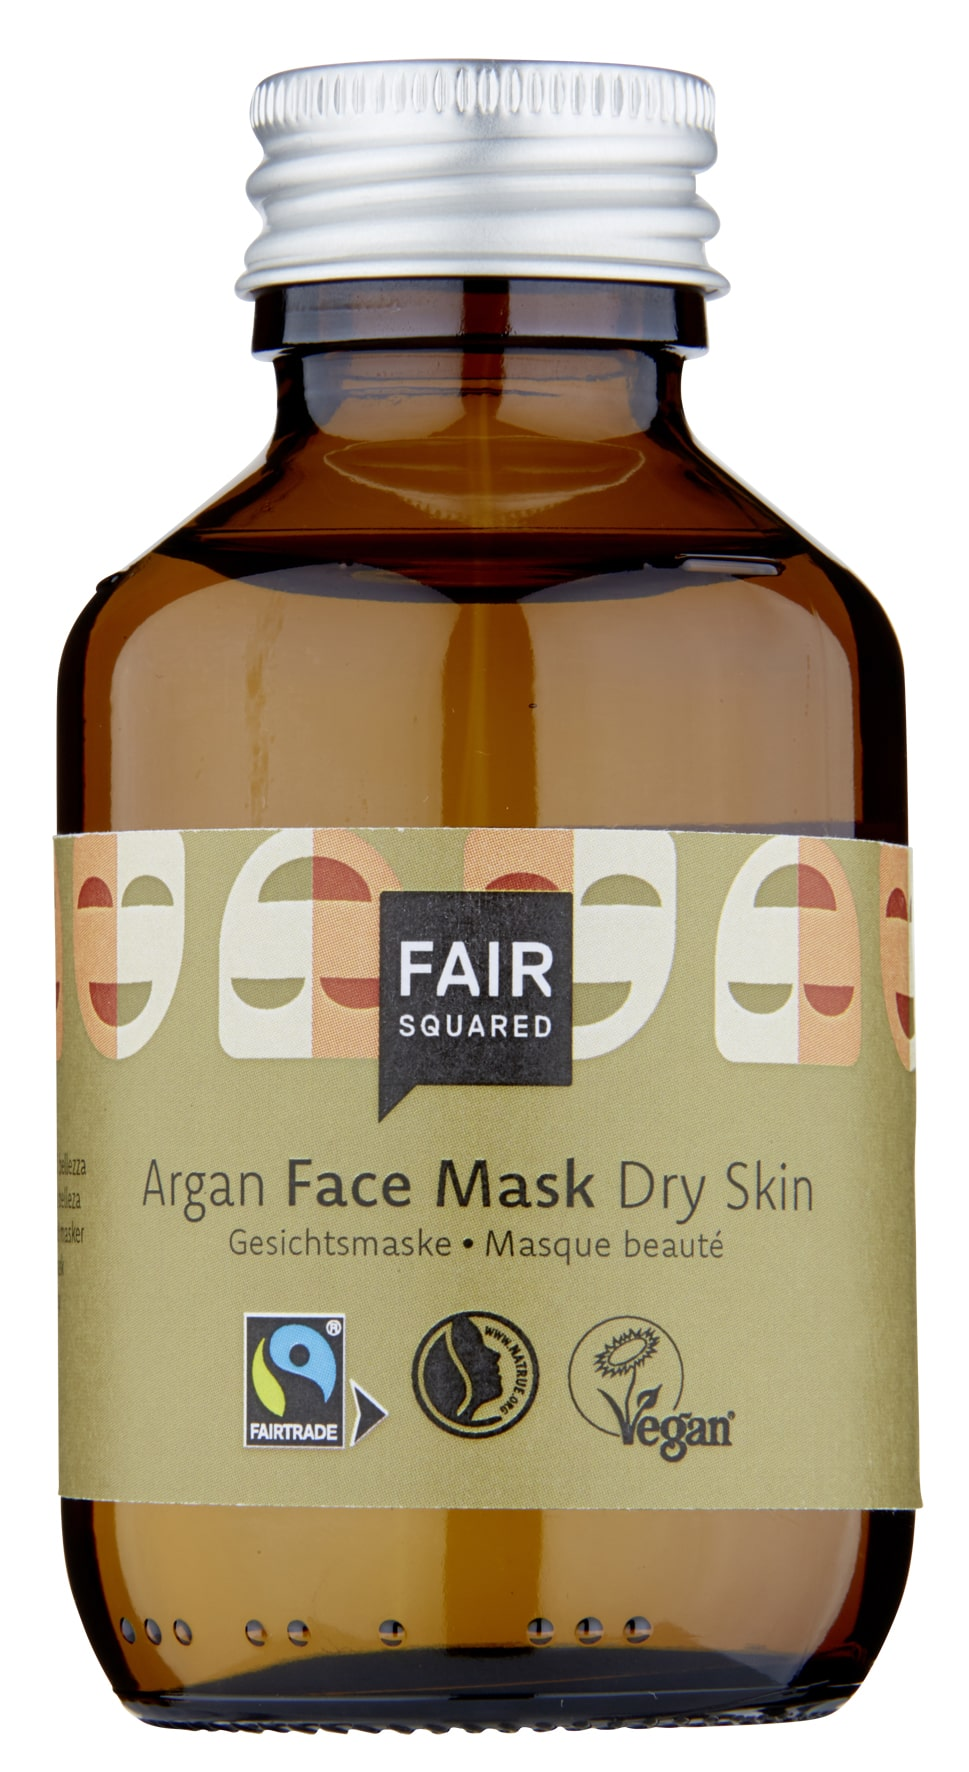 Argan Facial Mask Dry Skin